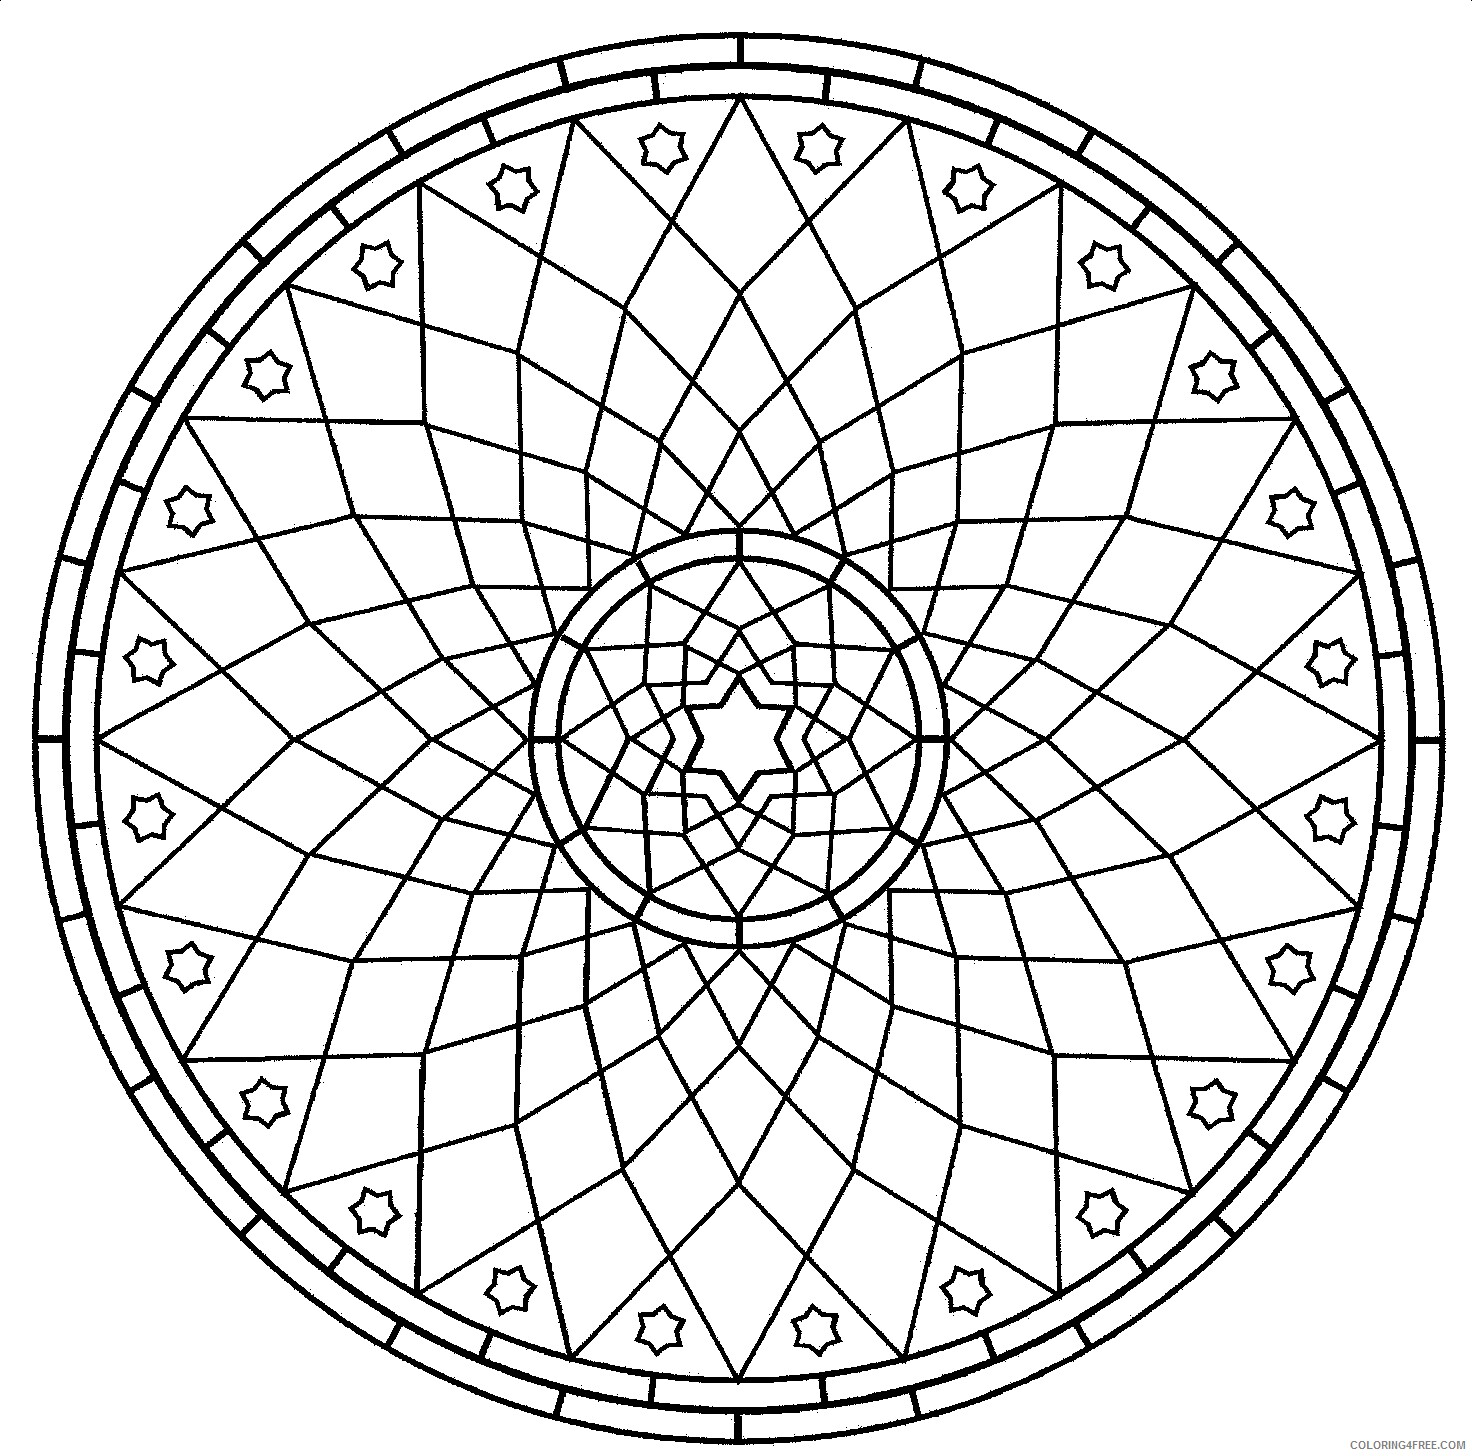 Geometric Design Coloring Pages Adult Geometric Art Printable 2020 420 Coloring4free